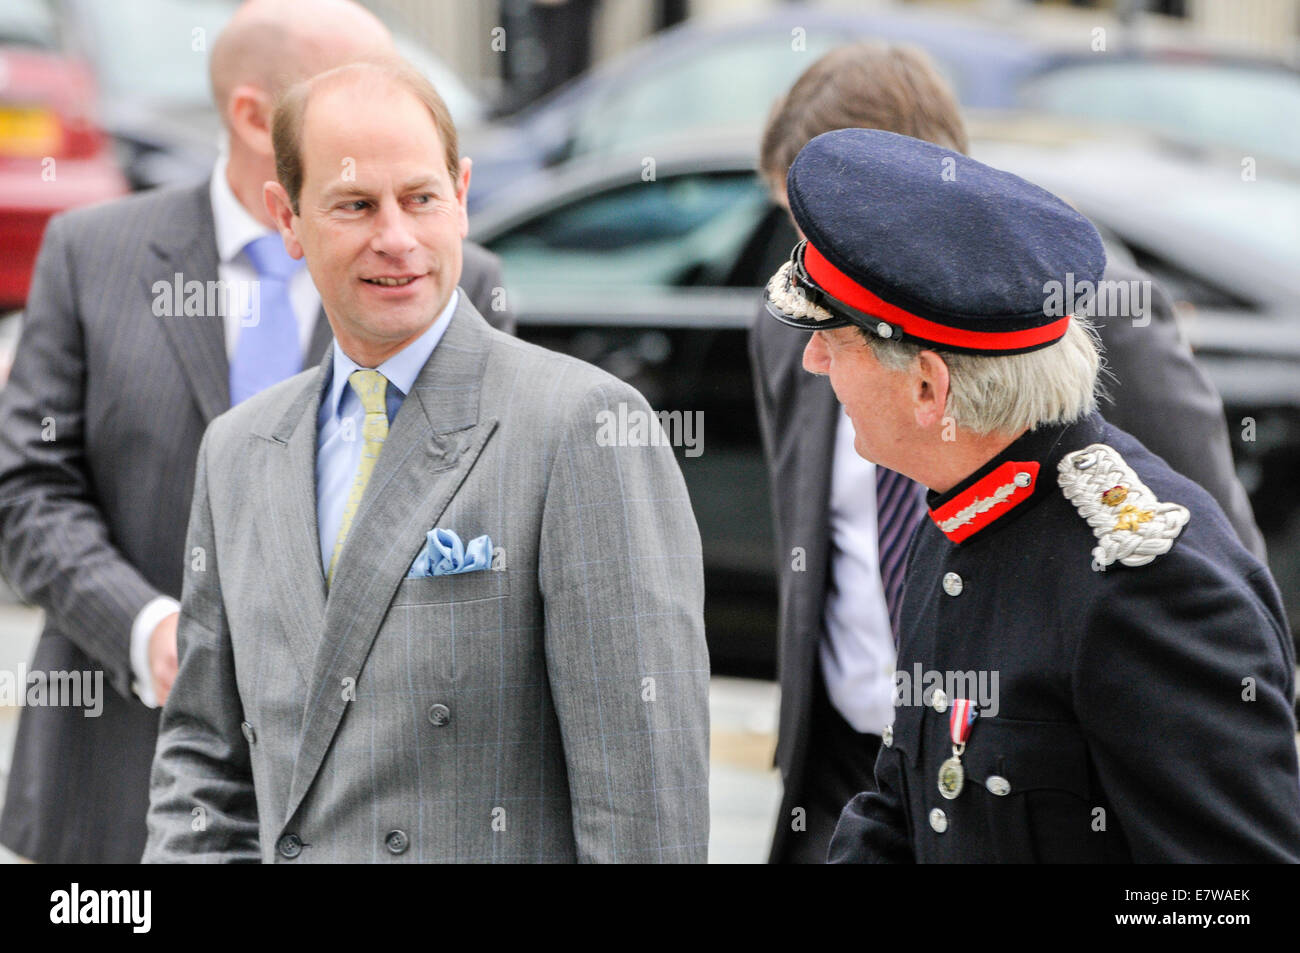 Downpatrick, Northern Ireland. 23/09/2014 - Prince Edward is welcomed to Downpatrick by the Lord Lieutenant for - Stock Image